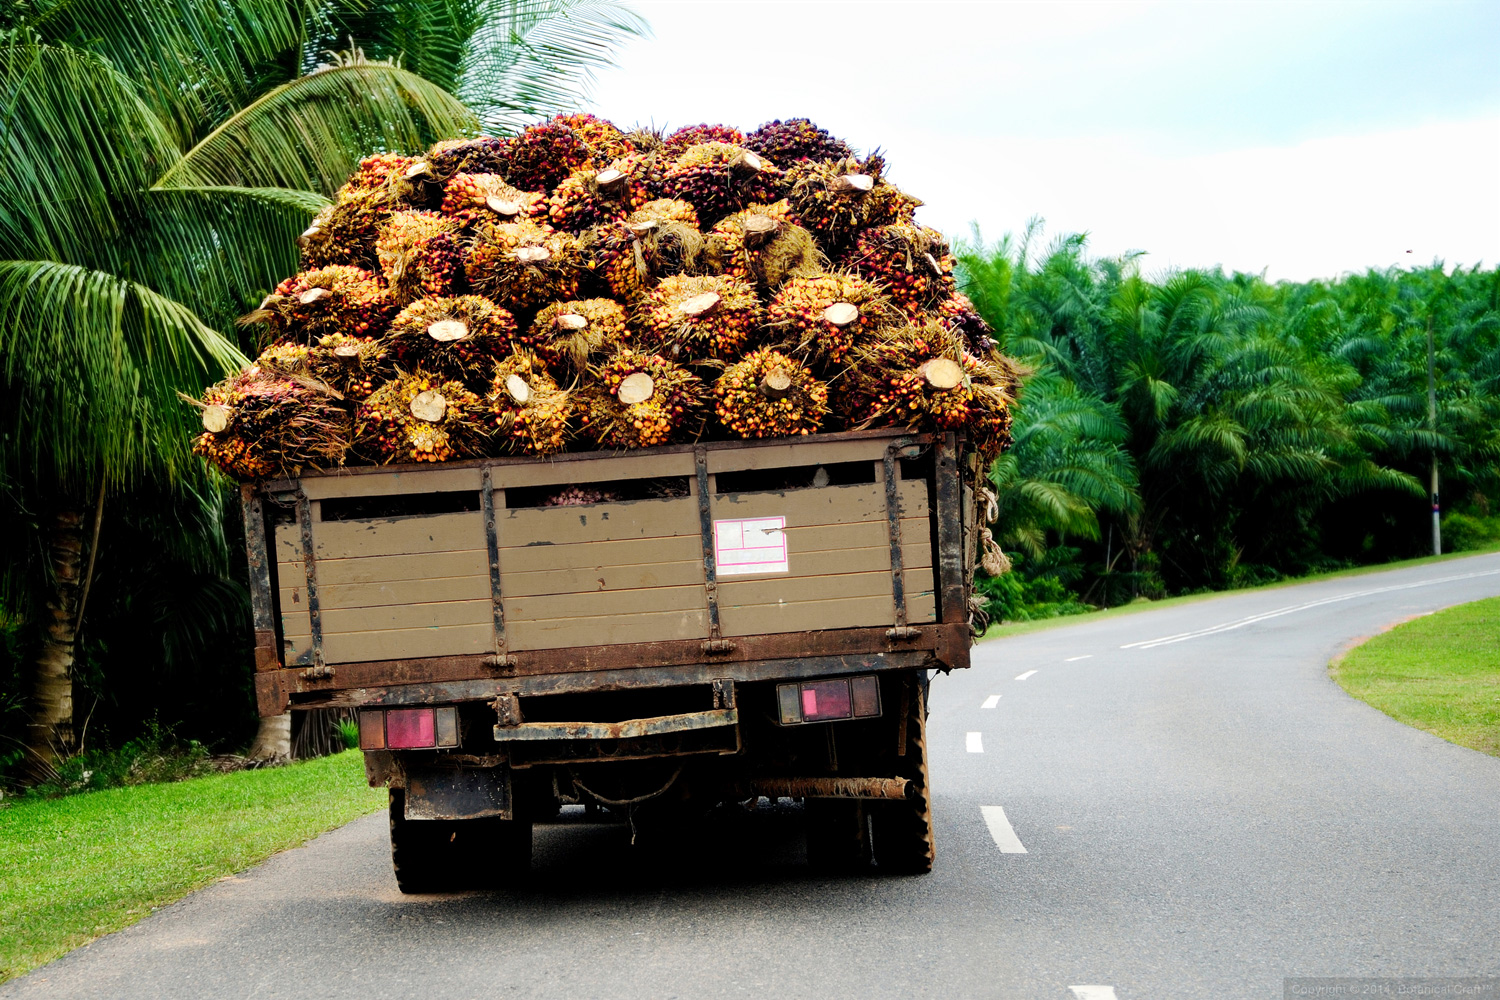 Truck of fresh palm fruit transporting for processing